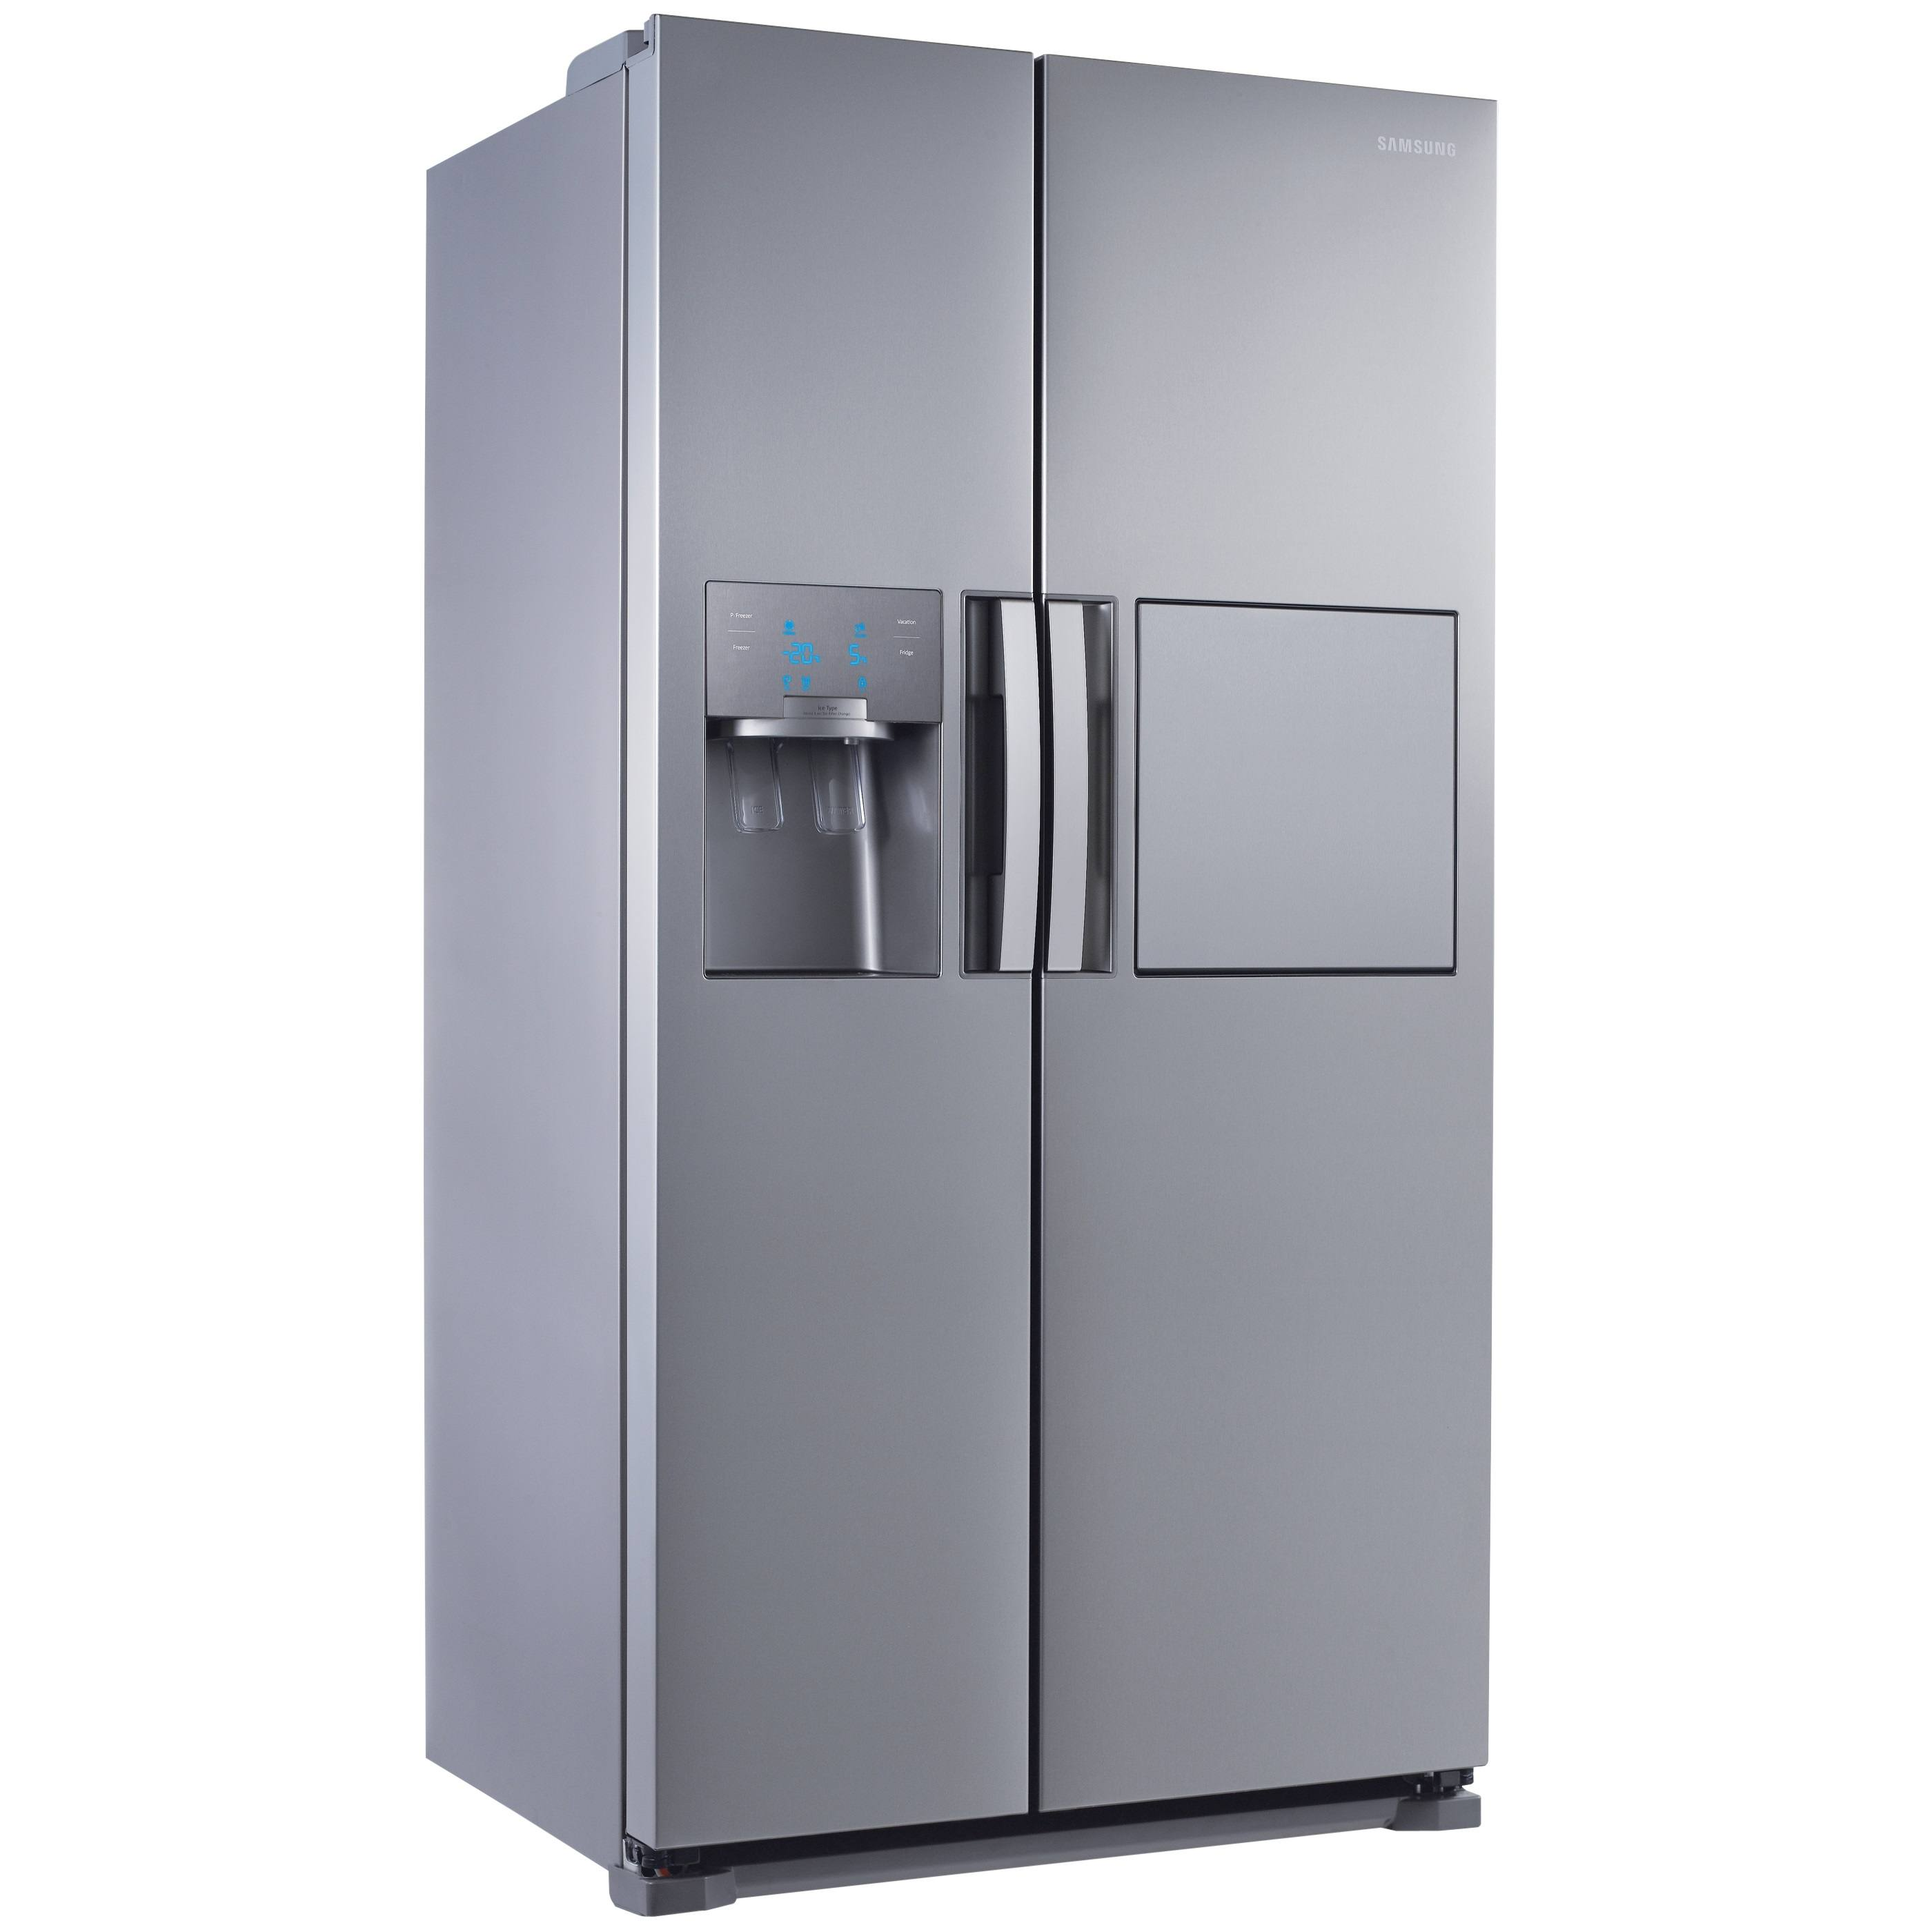 beautiful samsung frigo side by side images. Black Bedroom Furniture Sets. Home Design Ideas